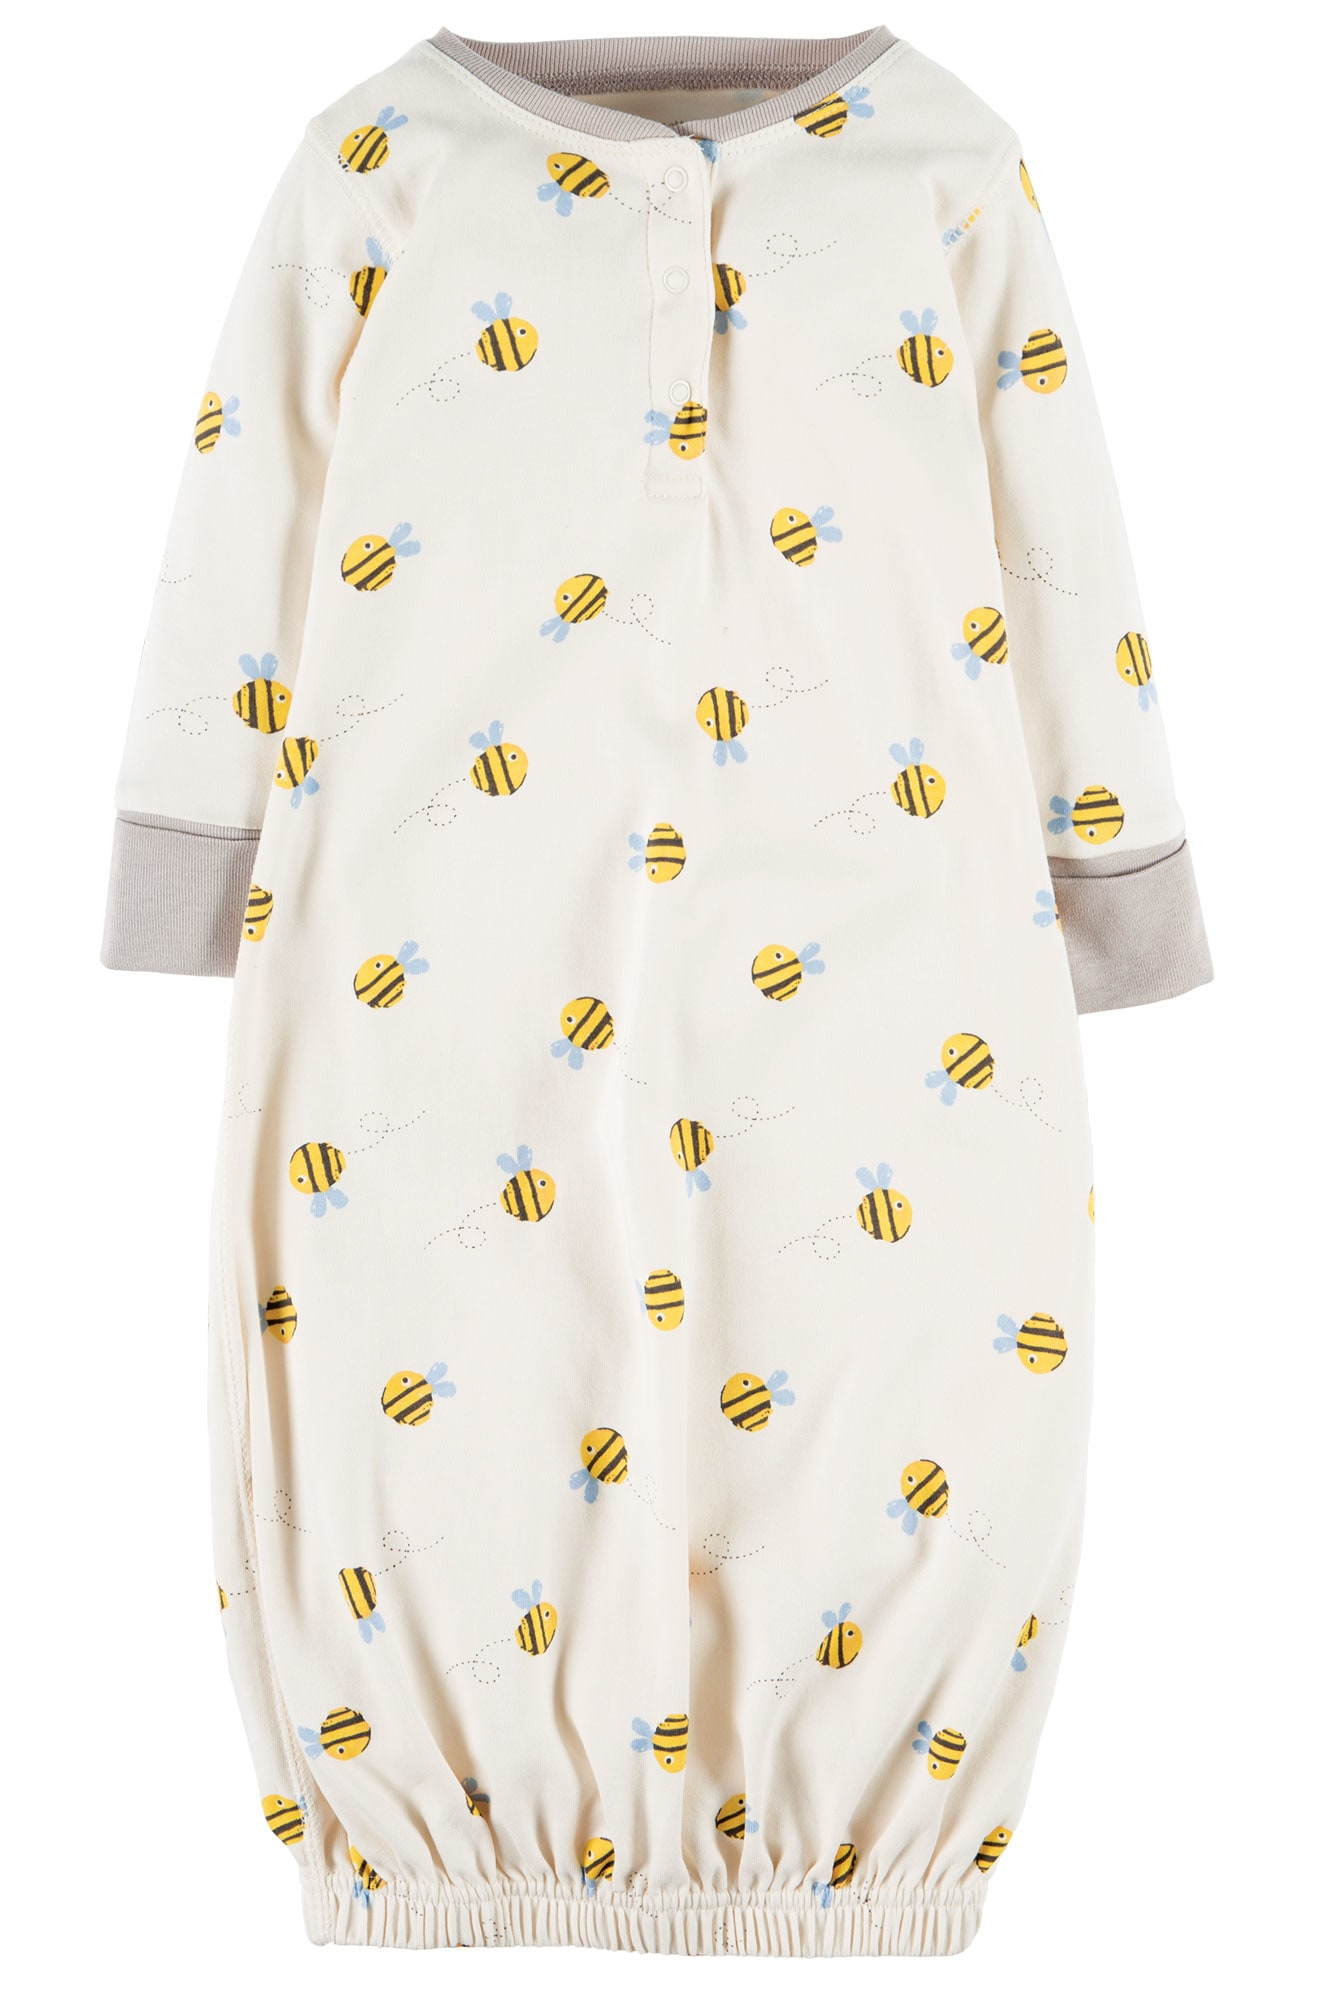 Stockists of Buzzy Bee Gown